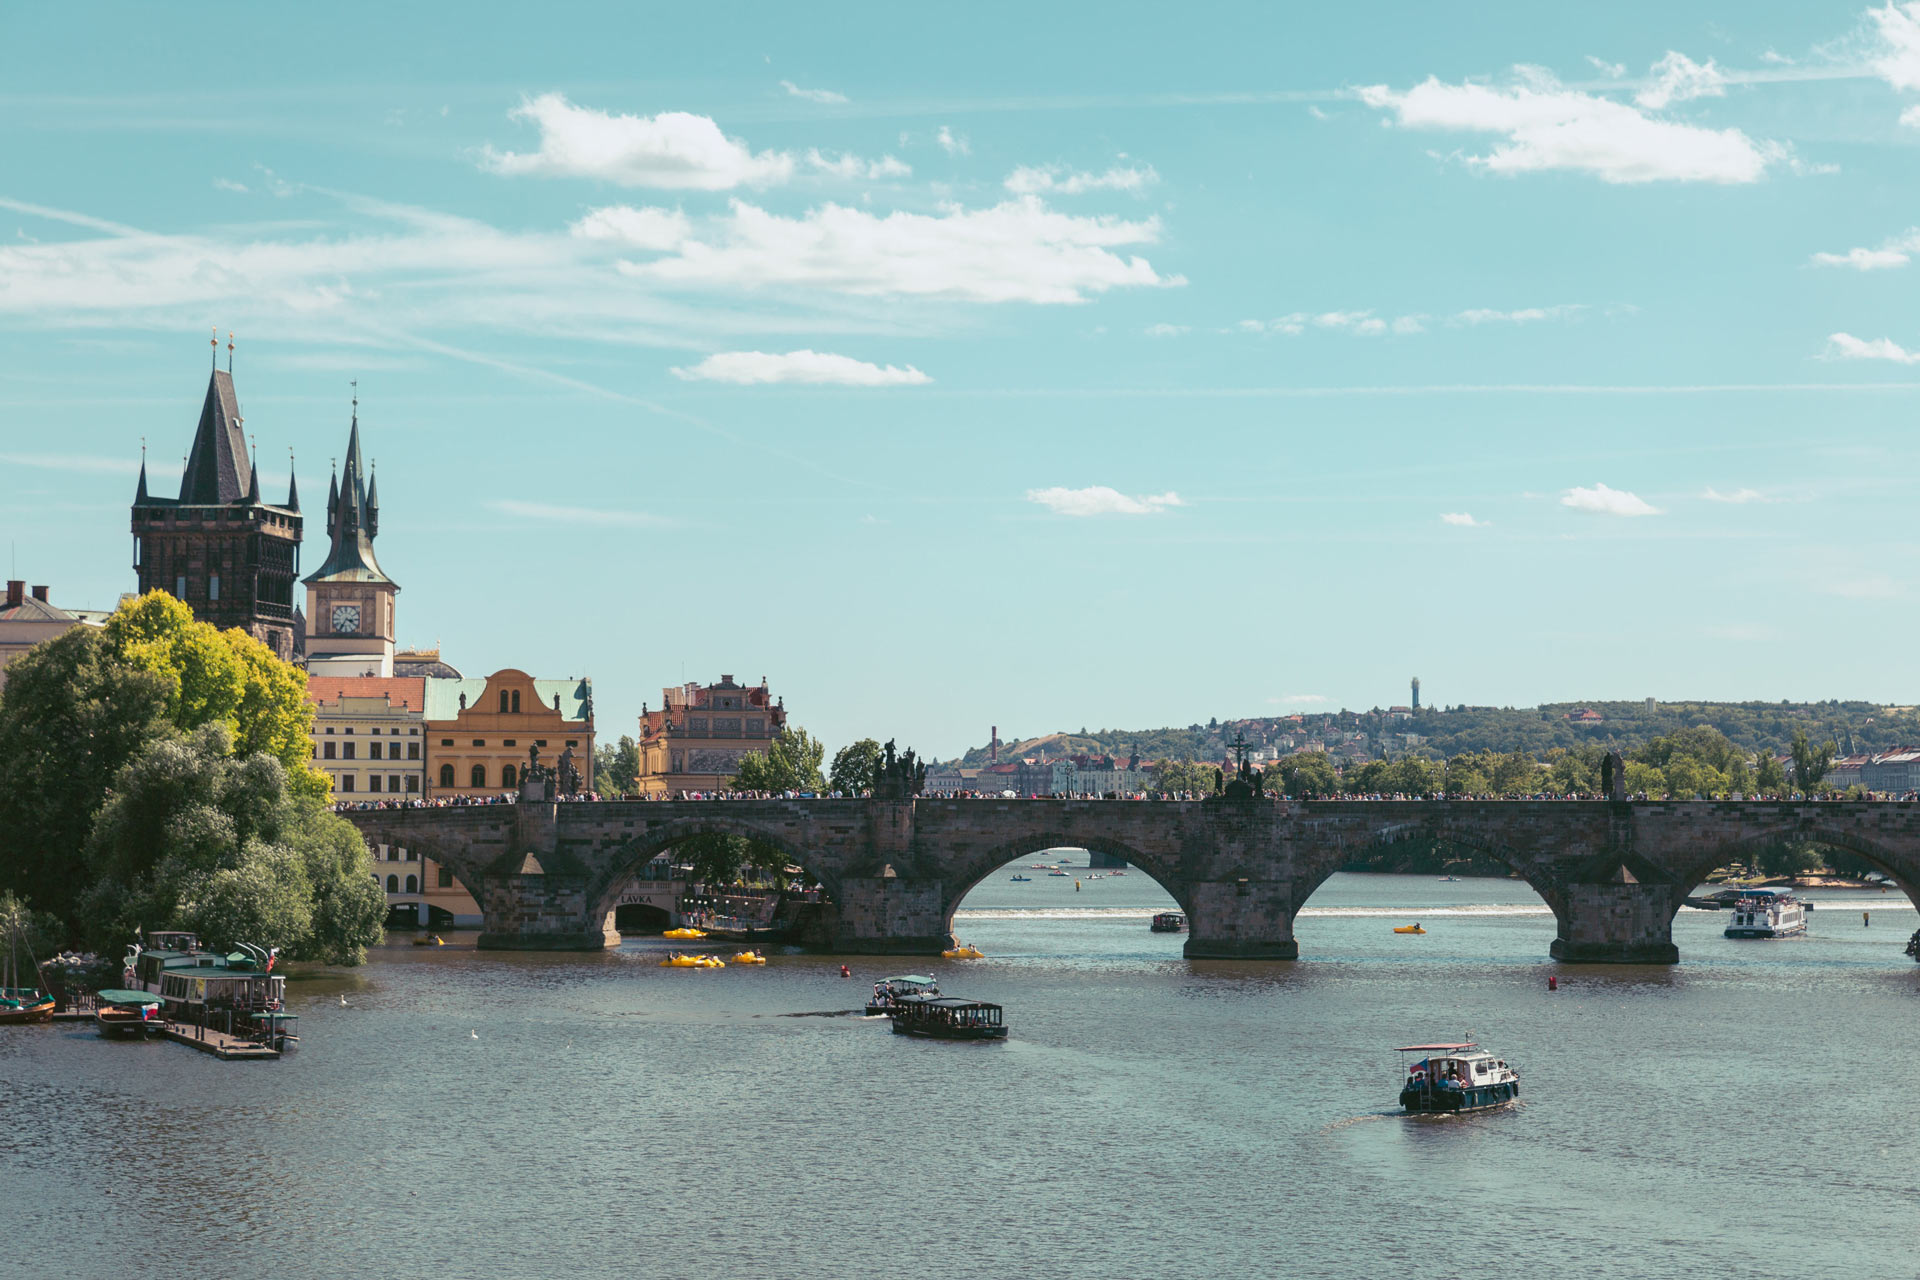 The beautiful Charles Bridge from afar.